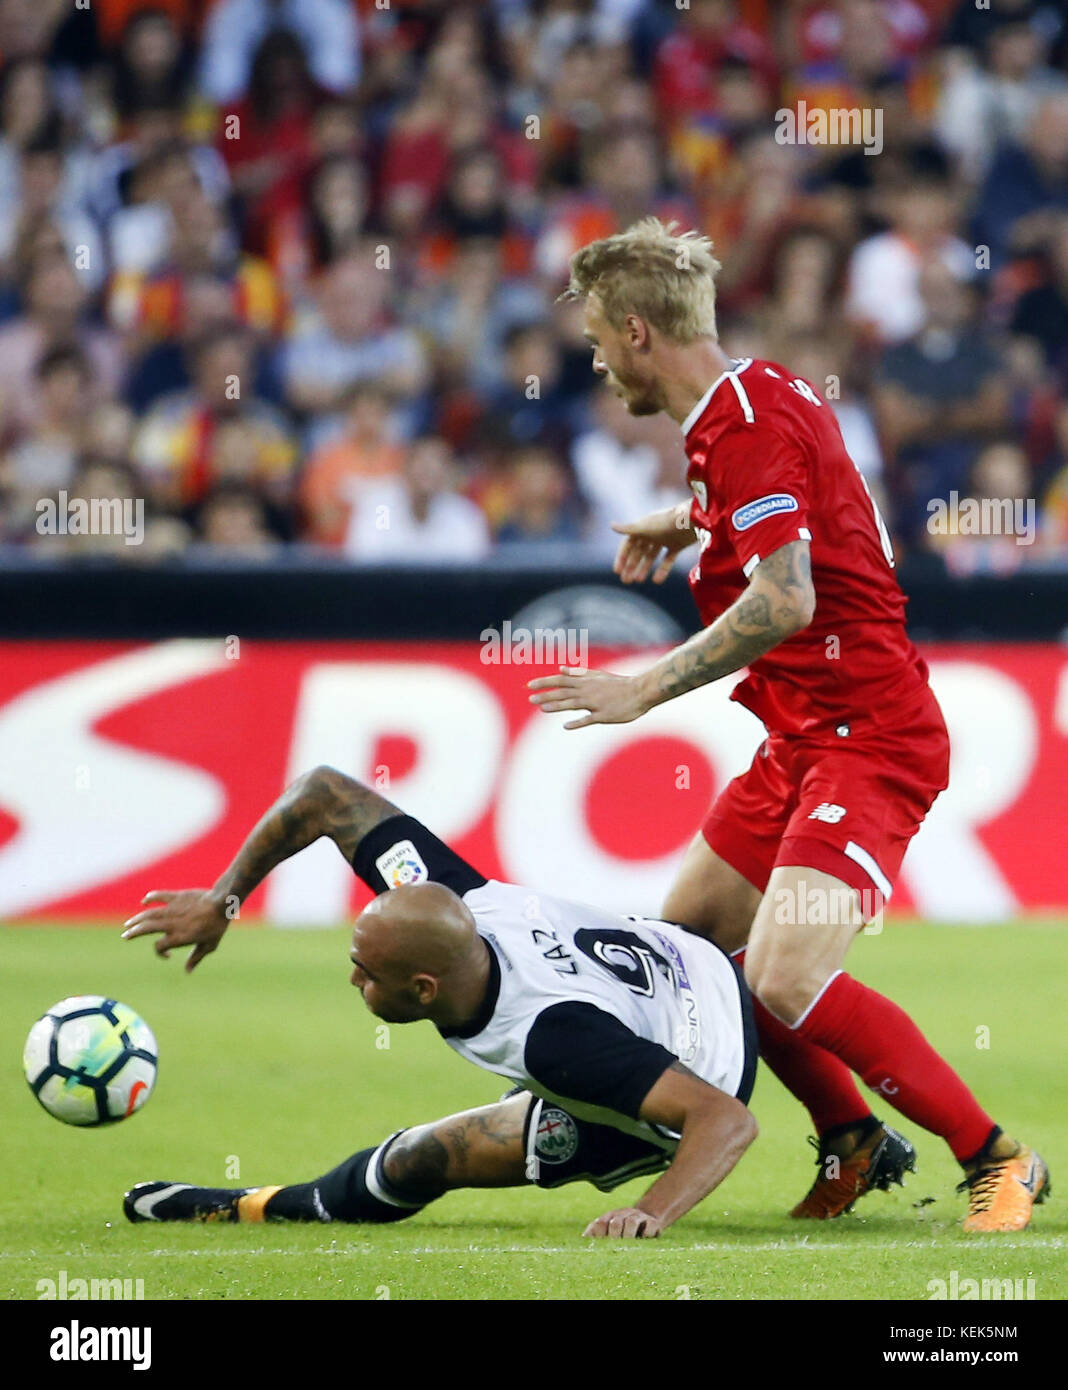 Sevilla CD´s player Simon Kjaer and Valencia´s Simone Zaza the Primera Division LaLiga match at the Mestalla - Stock Image